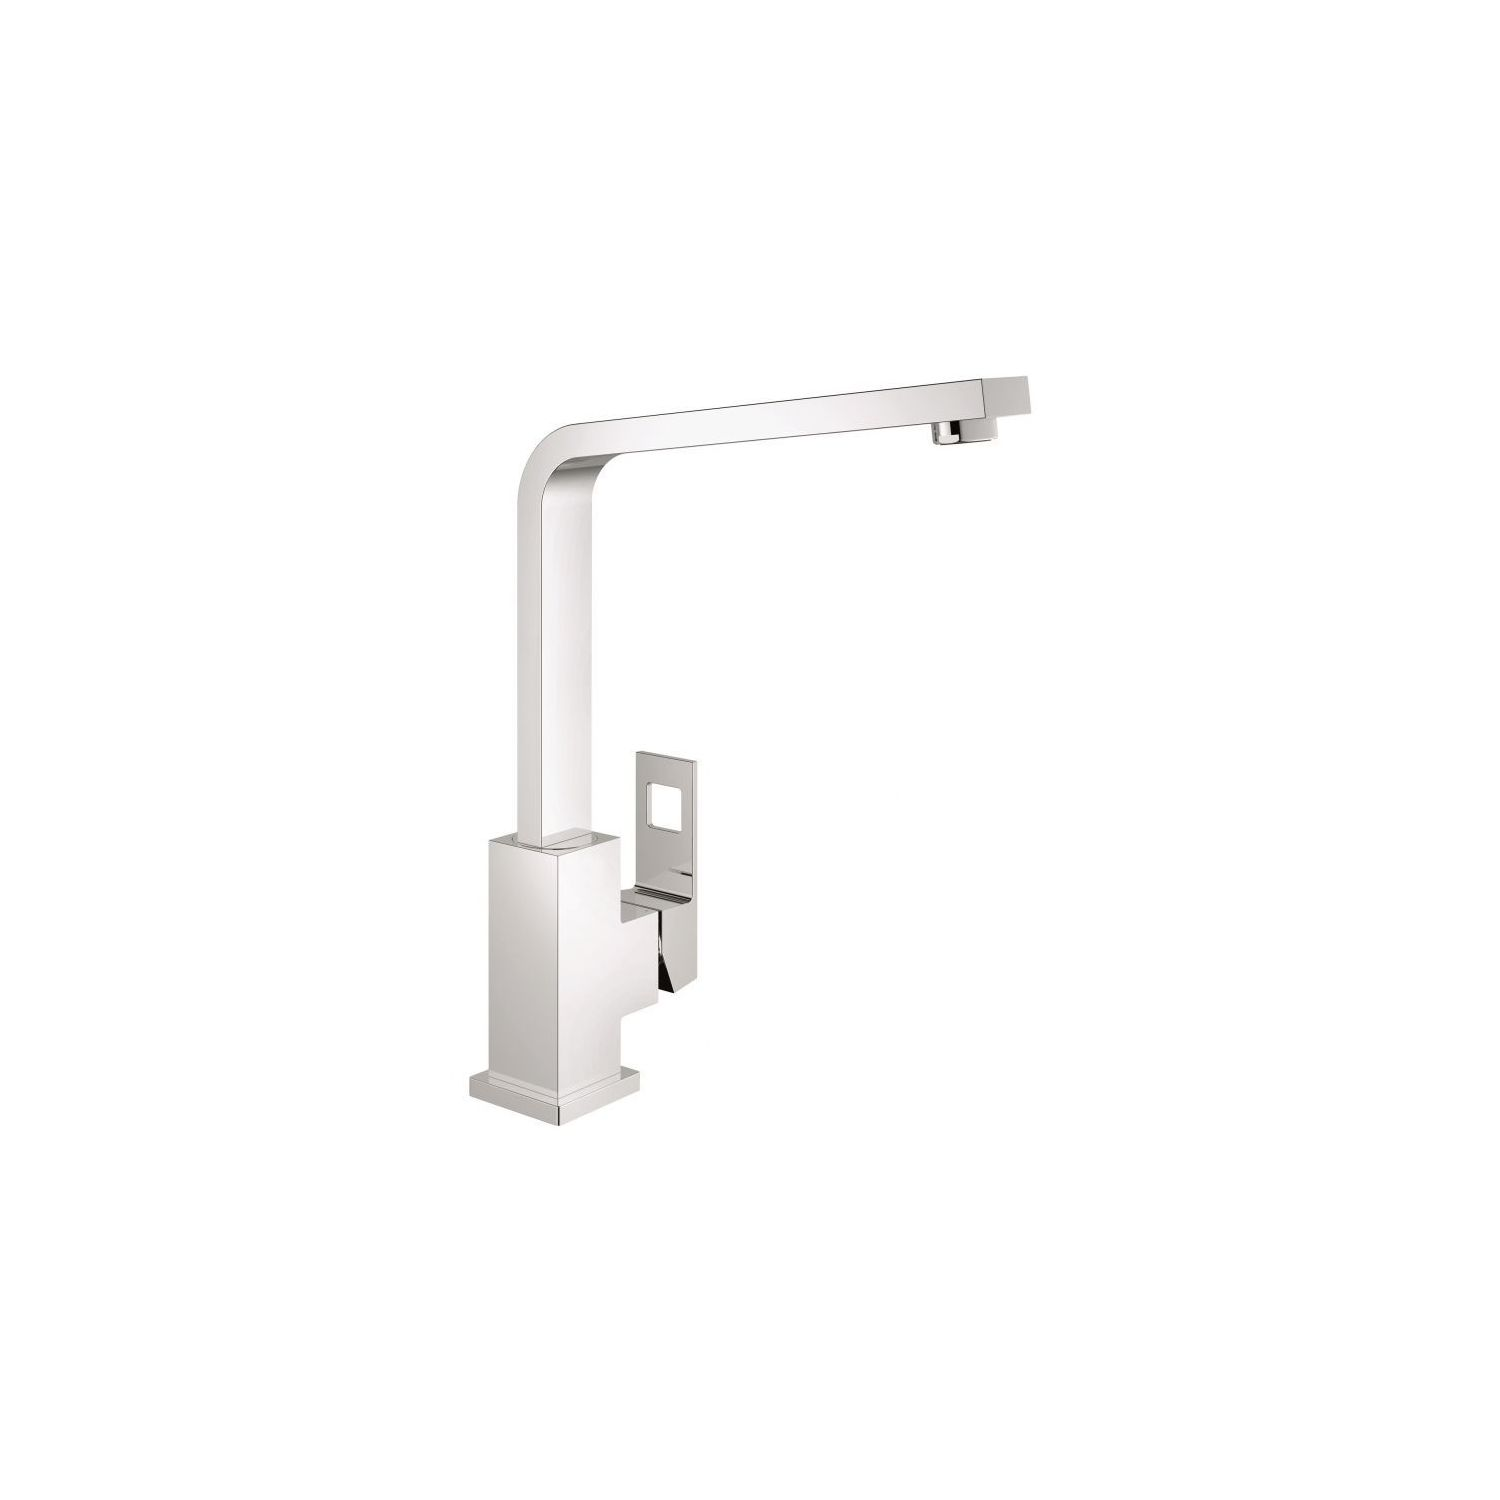 Grohe feel cuisine grohe sail cube kitchen tap degree for Mitigeur grohe cuisine